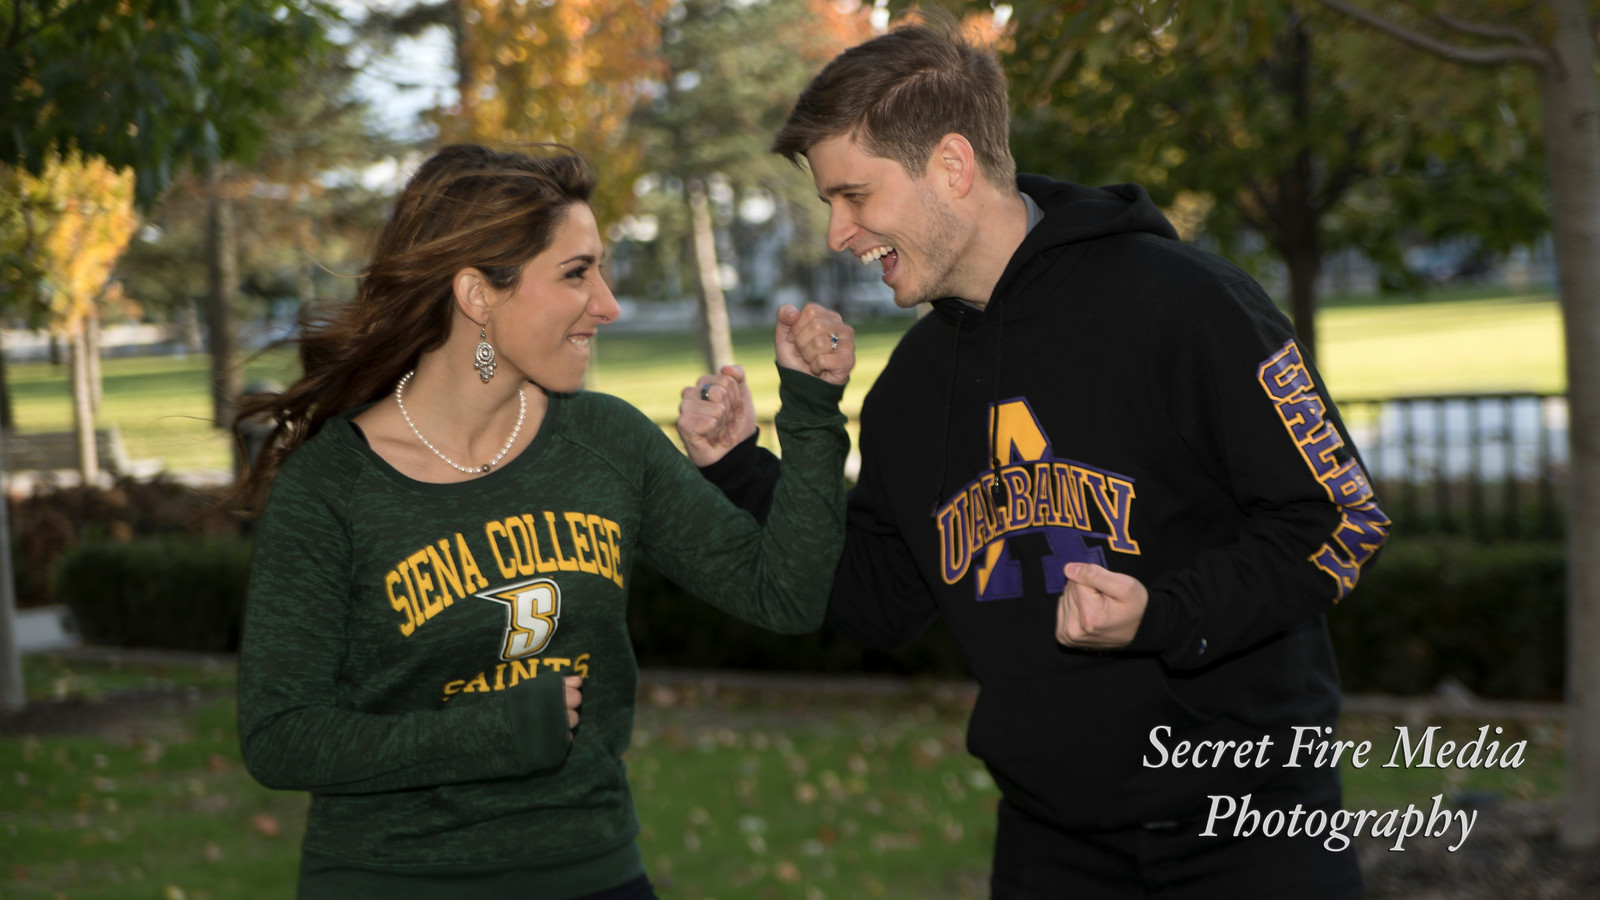 Bride and Groom wear Sienna Colleg and UAlbany sweaters at Their Albany Engagement Shoot at The University Of Albany